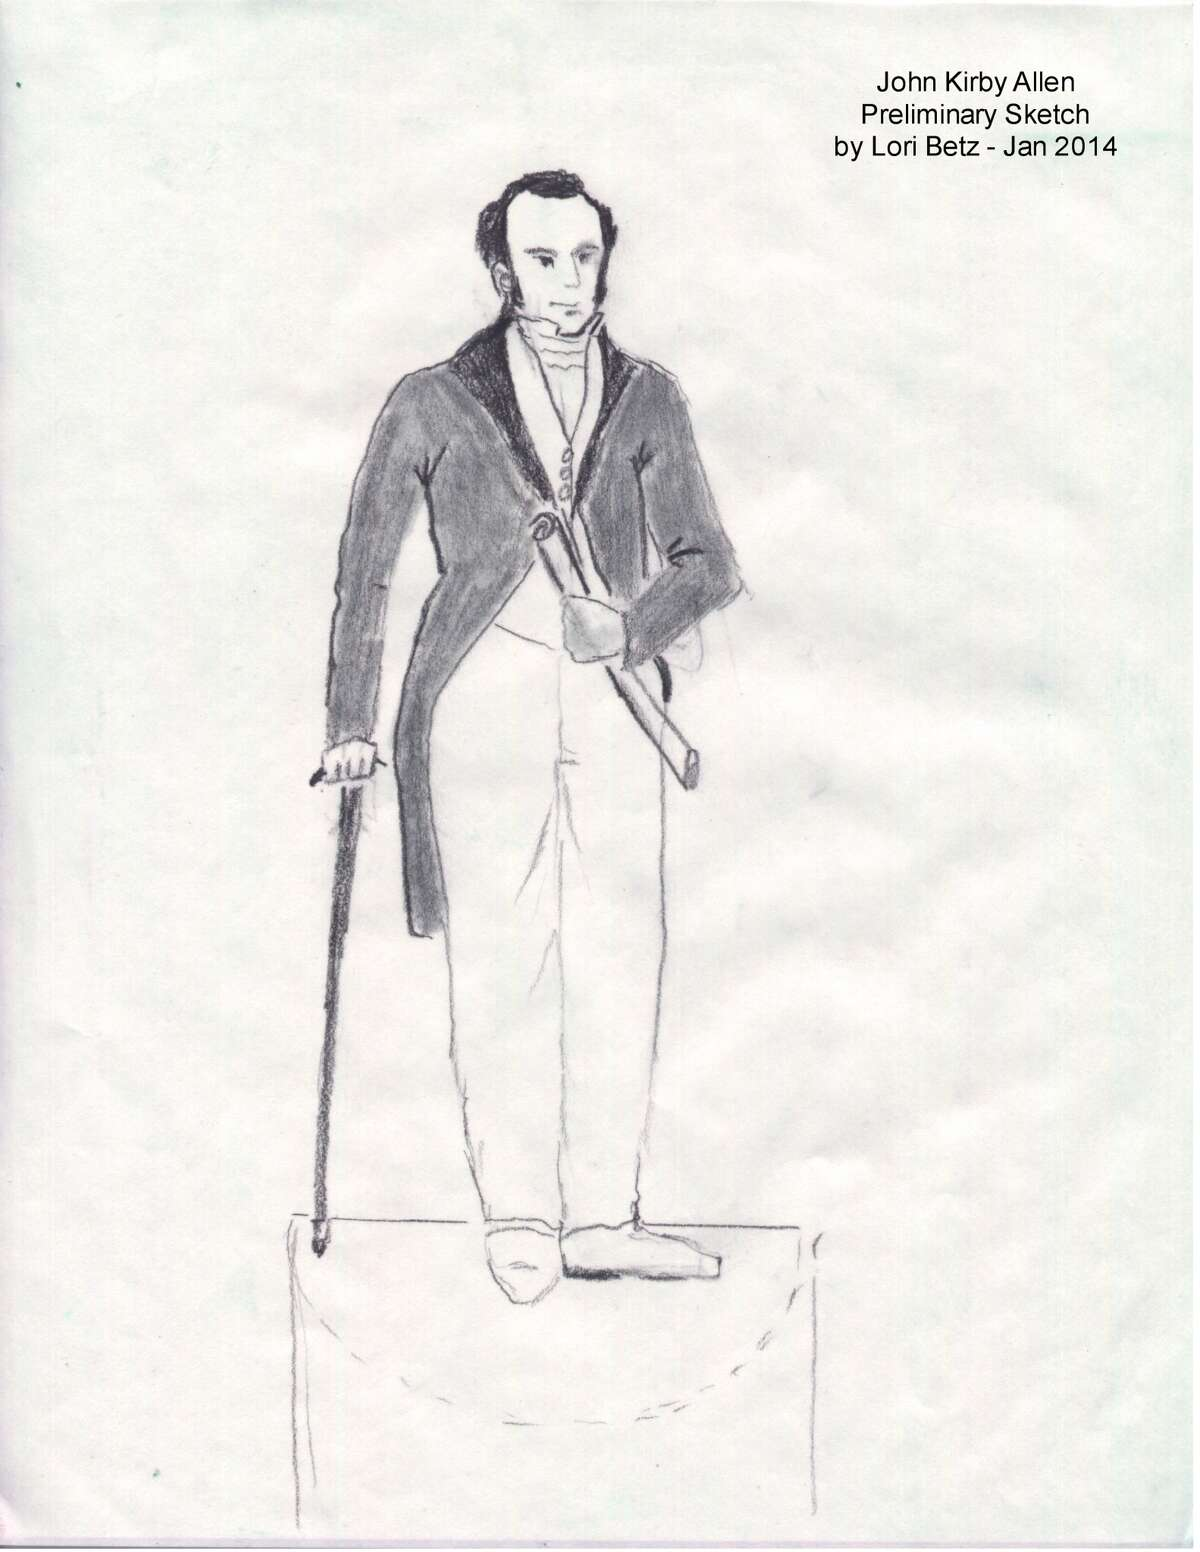 Sketches of the proposed statues of the Allen brothers (The Texas Star Chapter of the Daughters of the Republic of Texas)